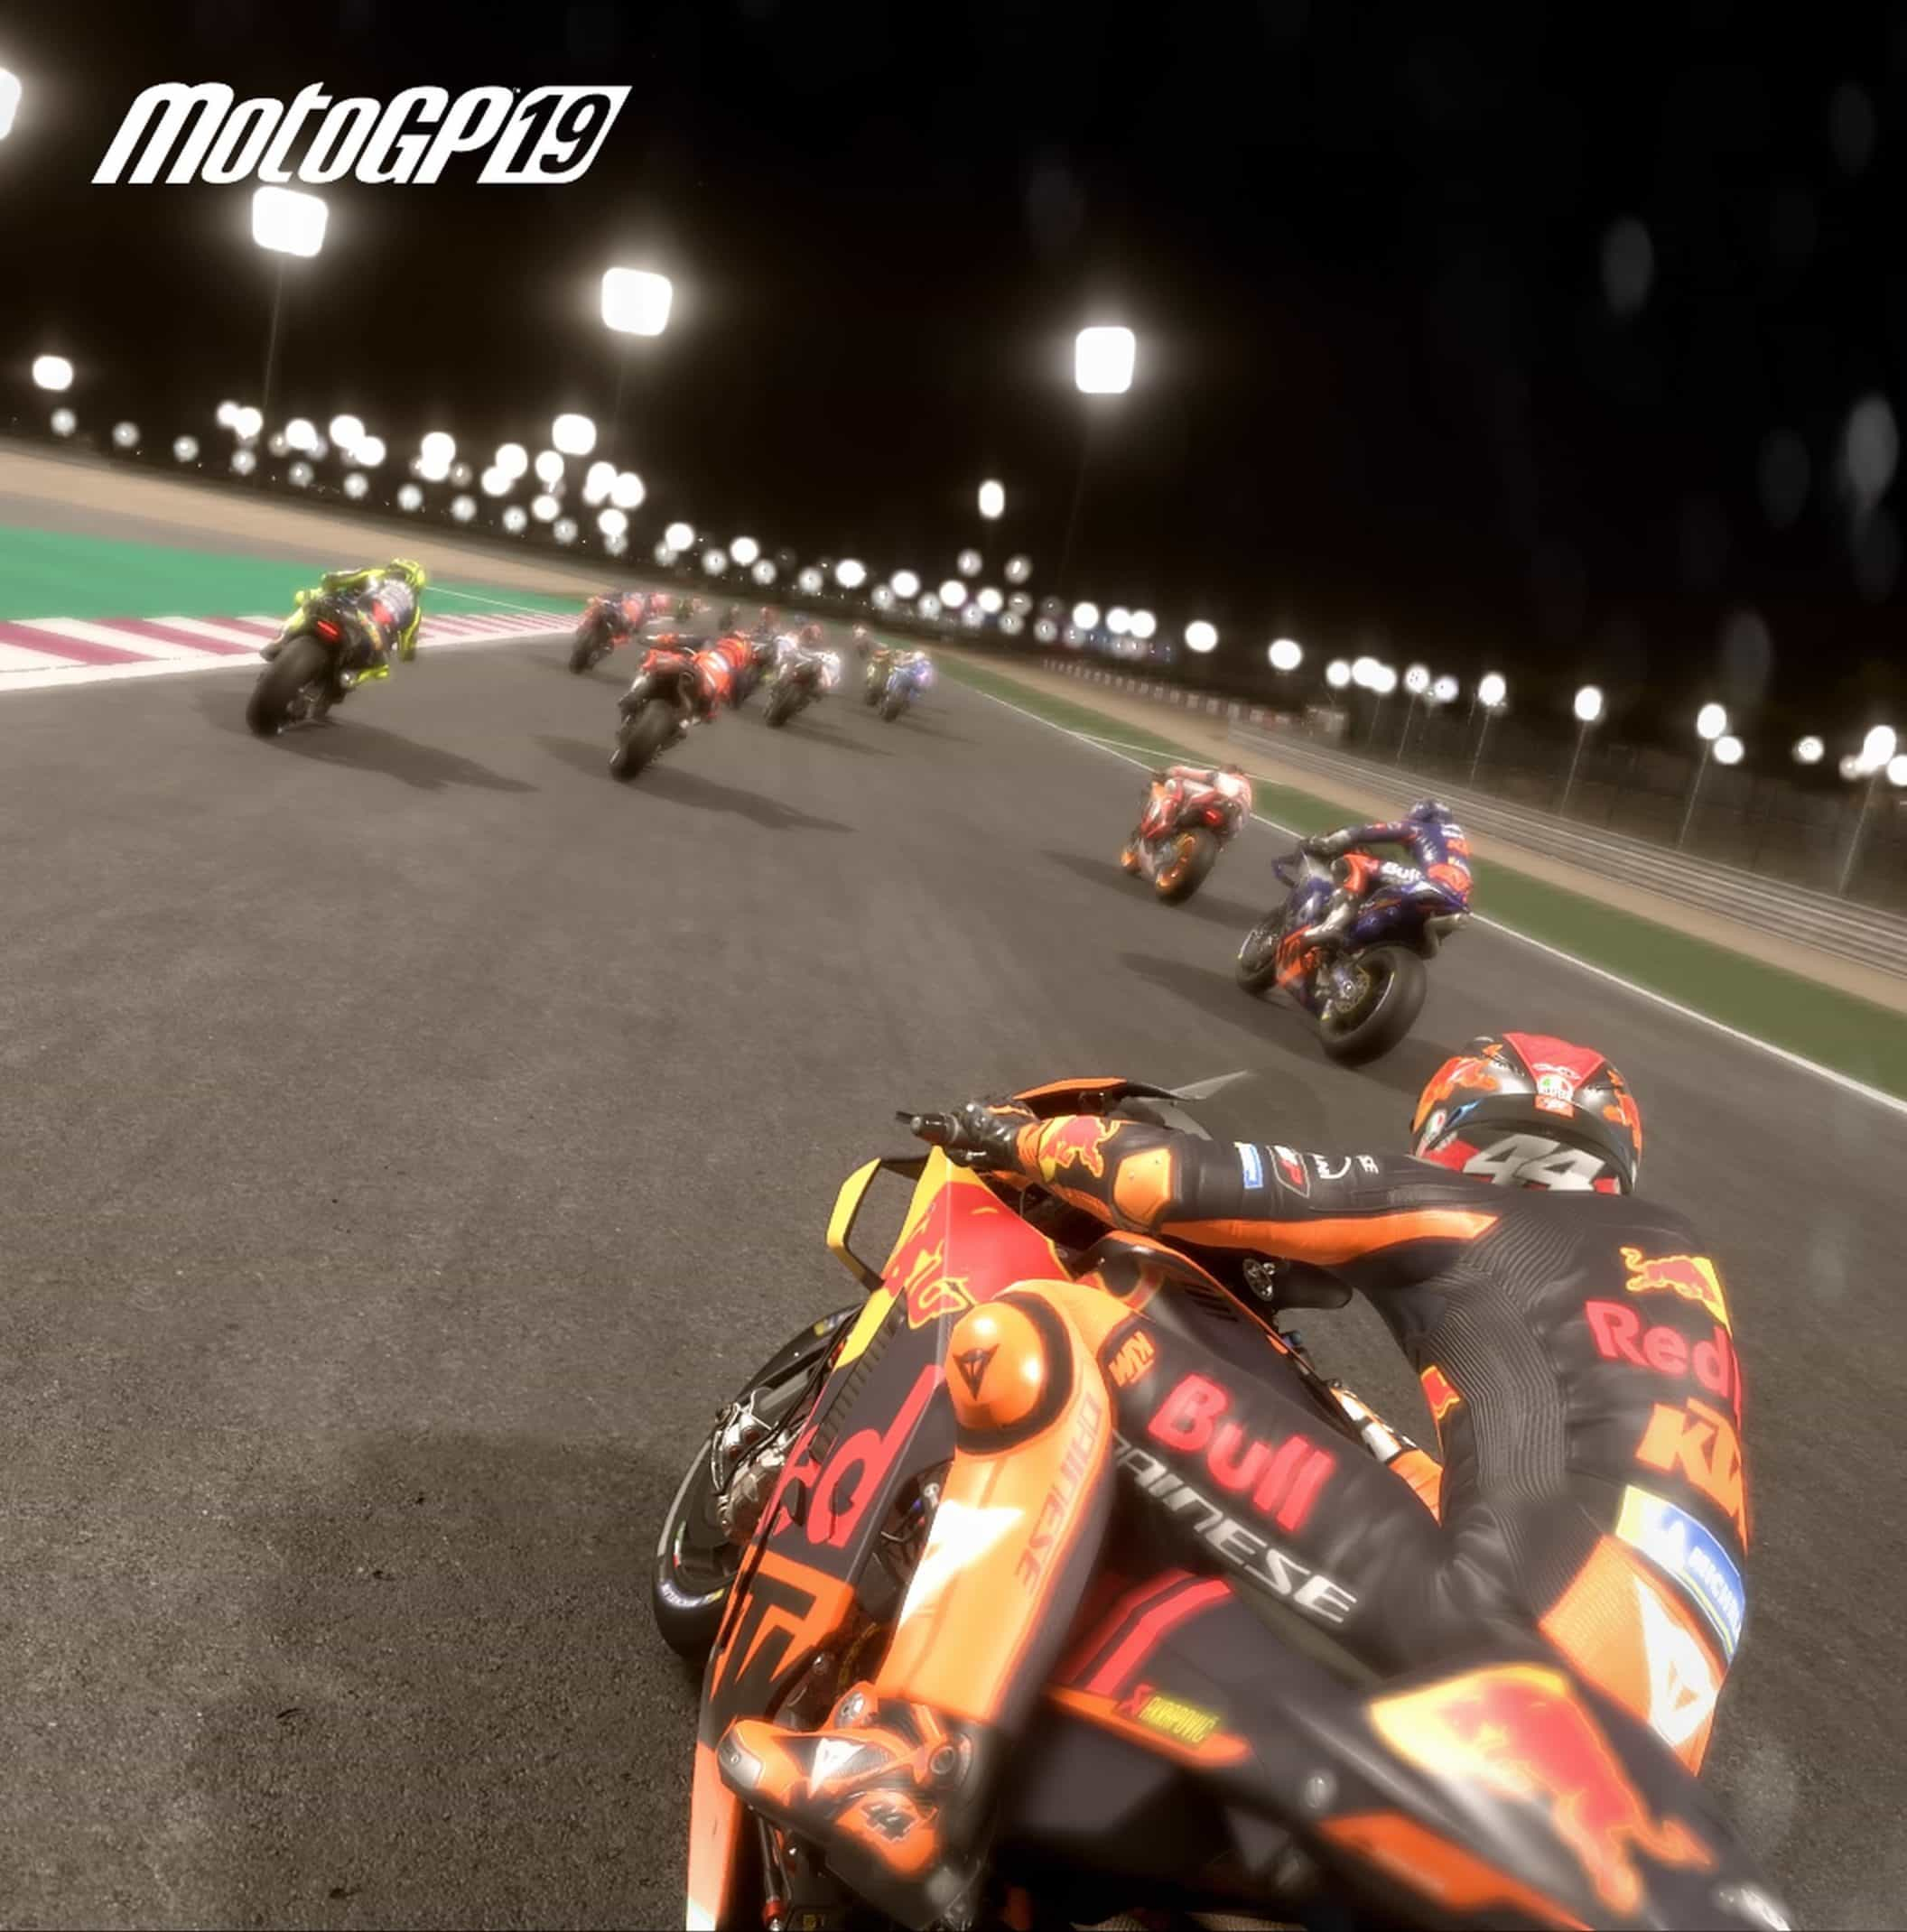 Motogp 19 Review Made For Hardcore Simulation Enthusiasts Vamers